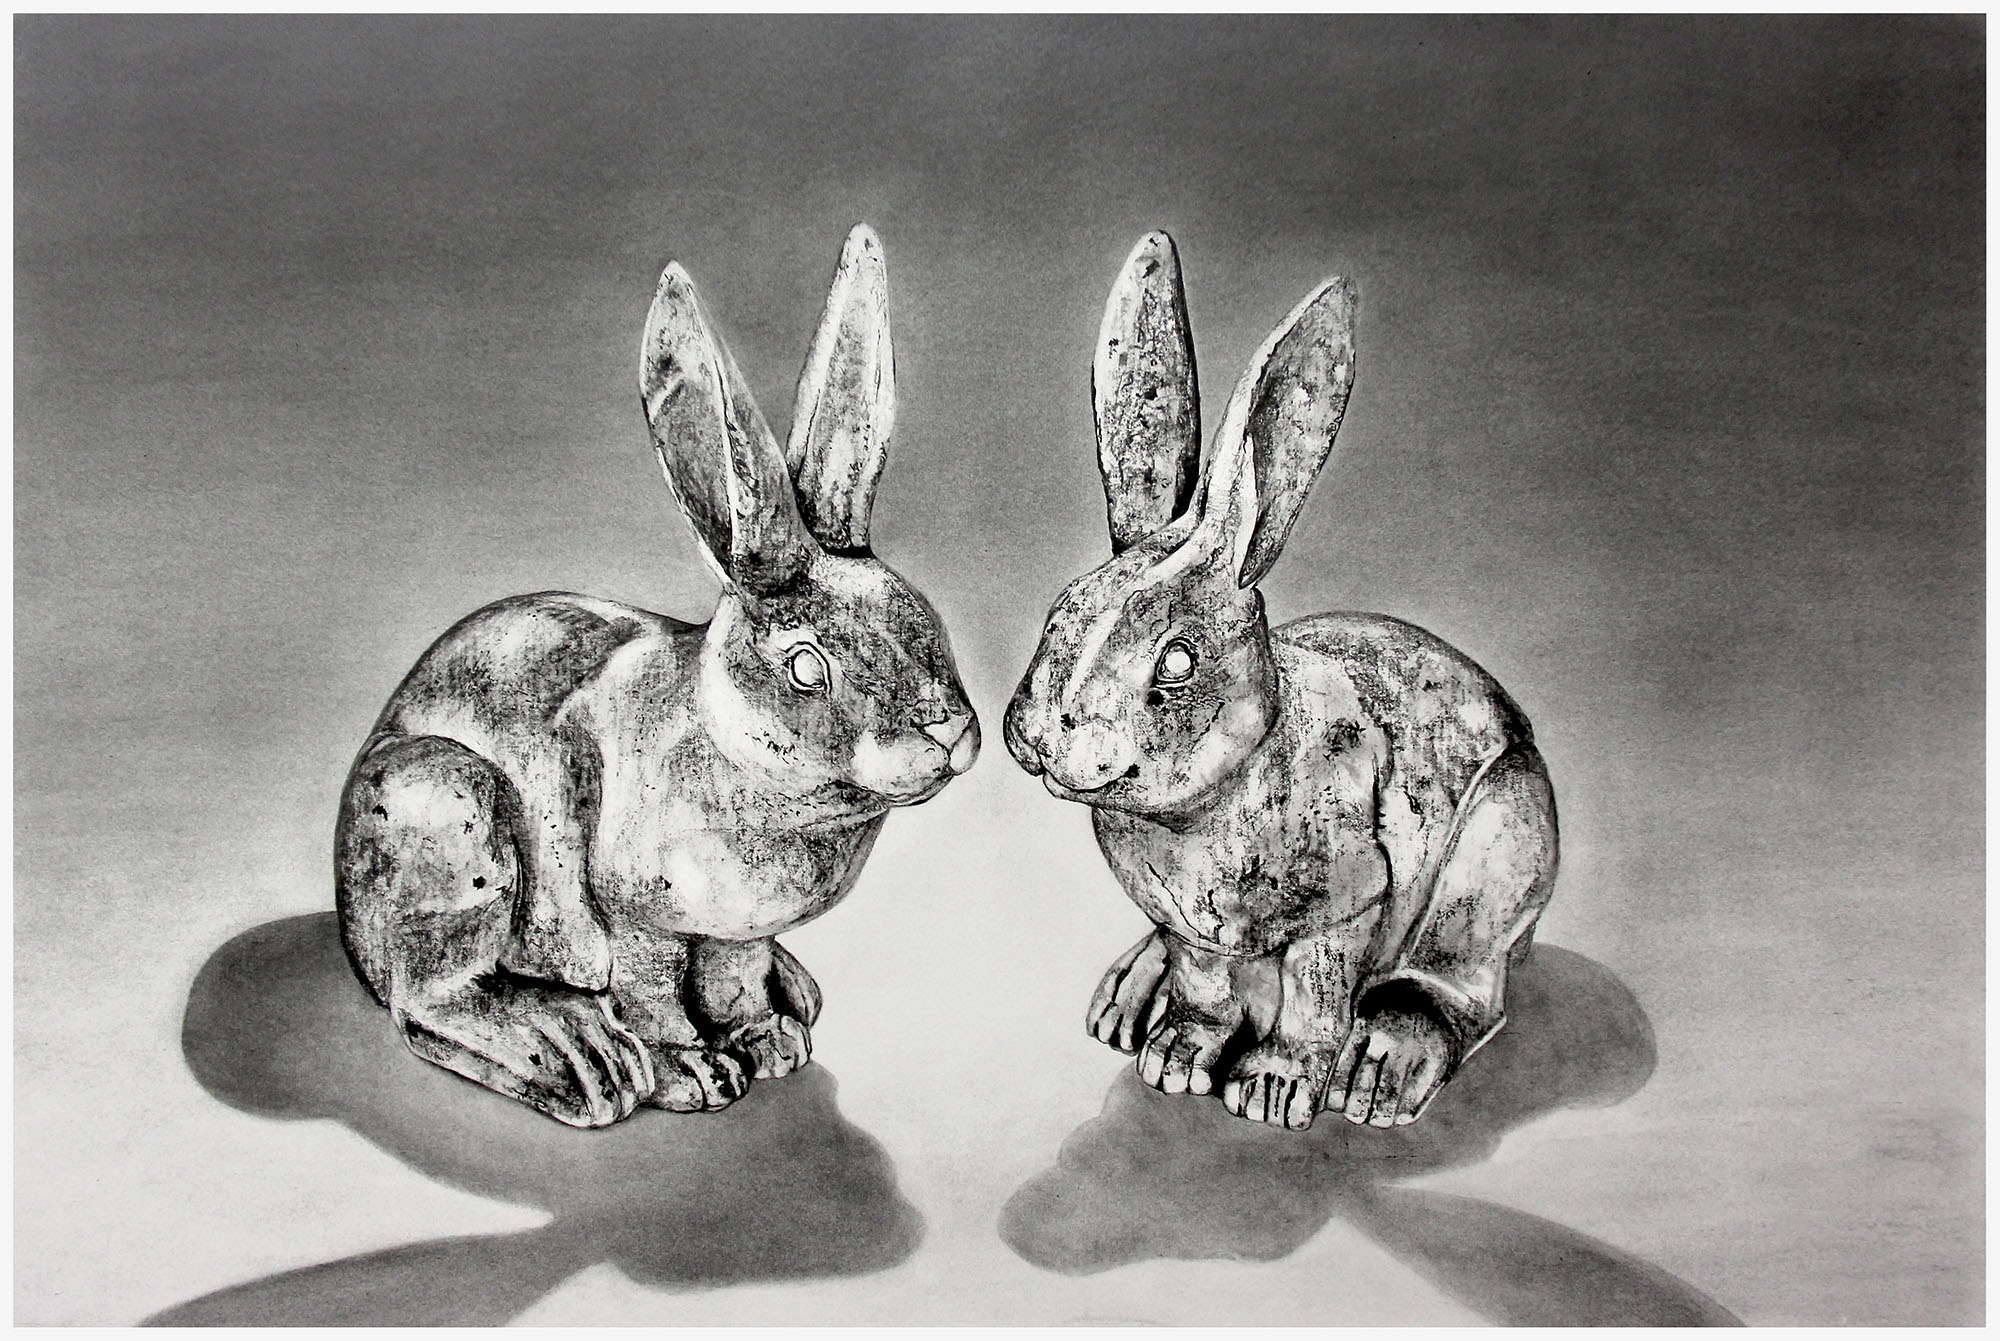 - 'Bunny Love'Graphite Drawing on paper/adhered to wood panelwith a wax finish ready to hang. 914mm x 610mmAlso available as a print$850ENQUIRE